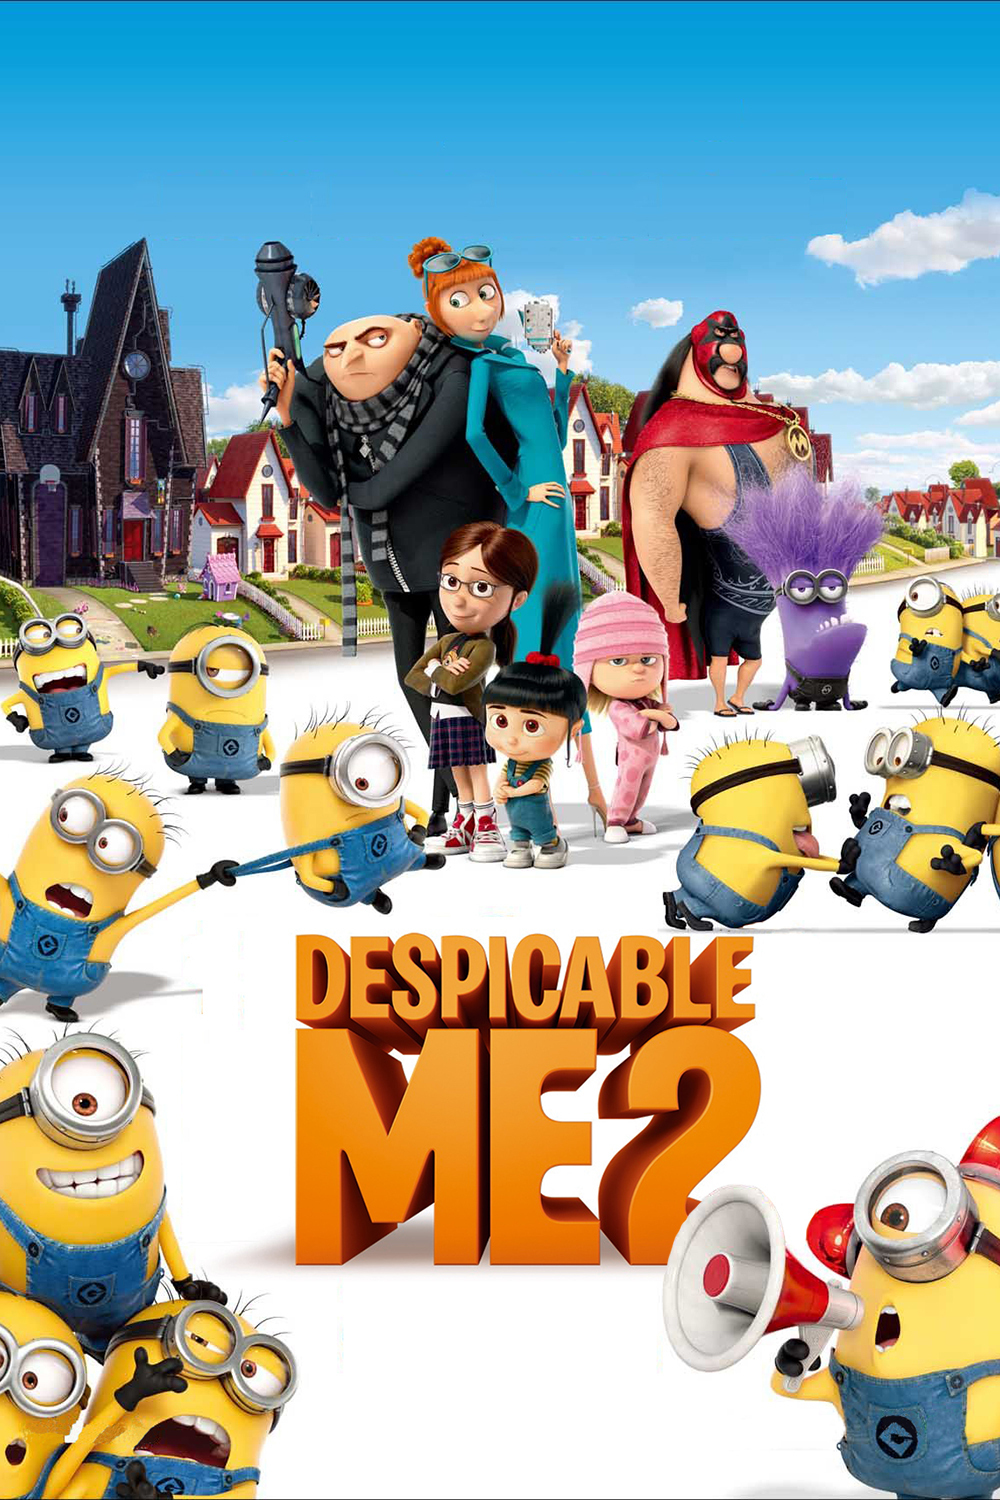 Despicable-Me-2-2013-movieposter